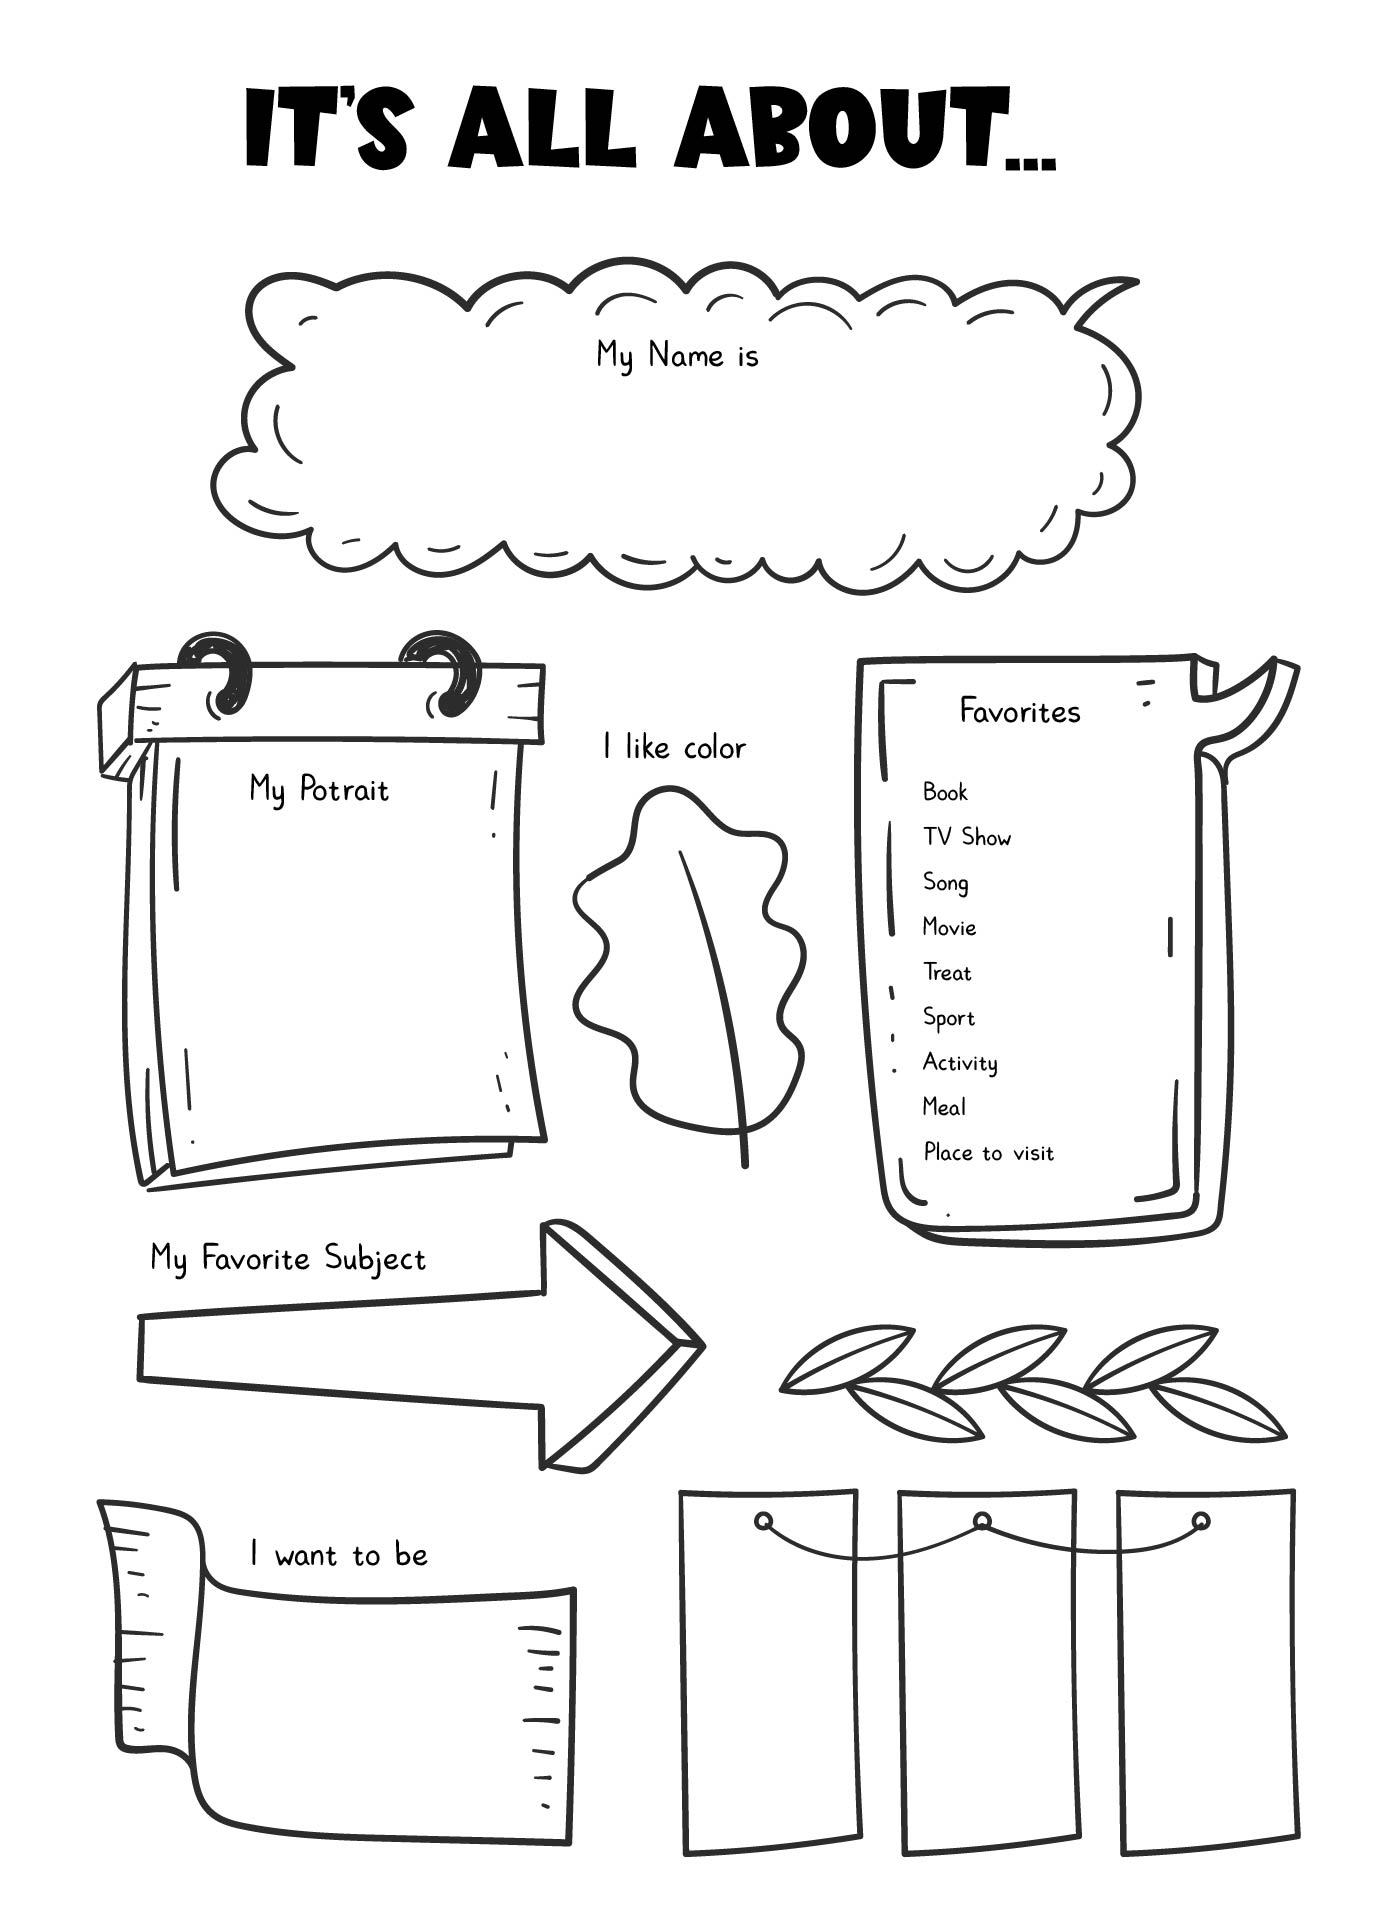 Worksheets Free Printable All About Me Worksheet all about me preschool worksheets fireyourmentor free printable 9 best images of preschool